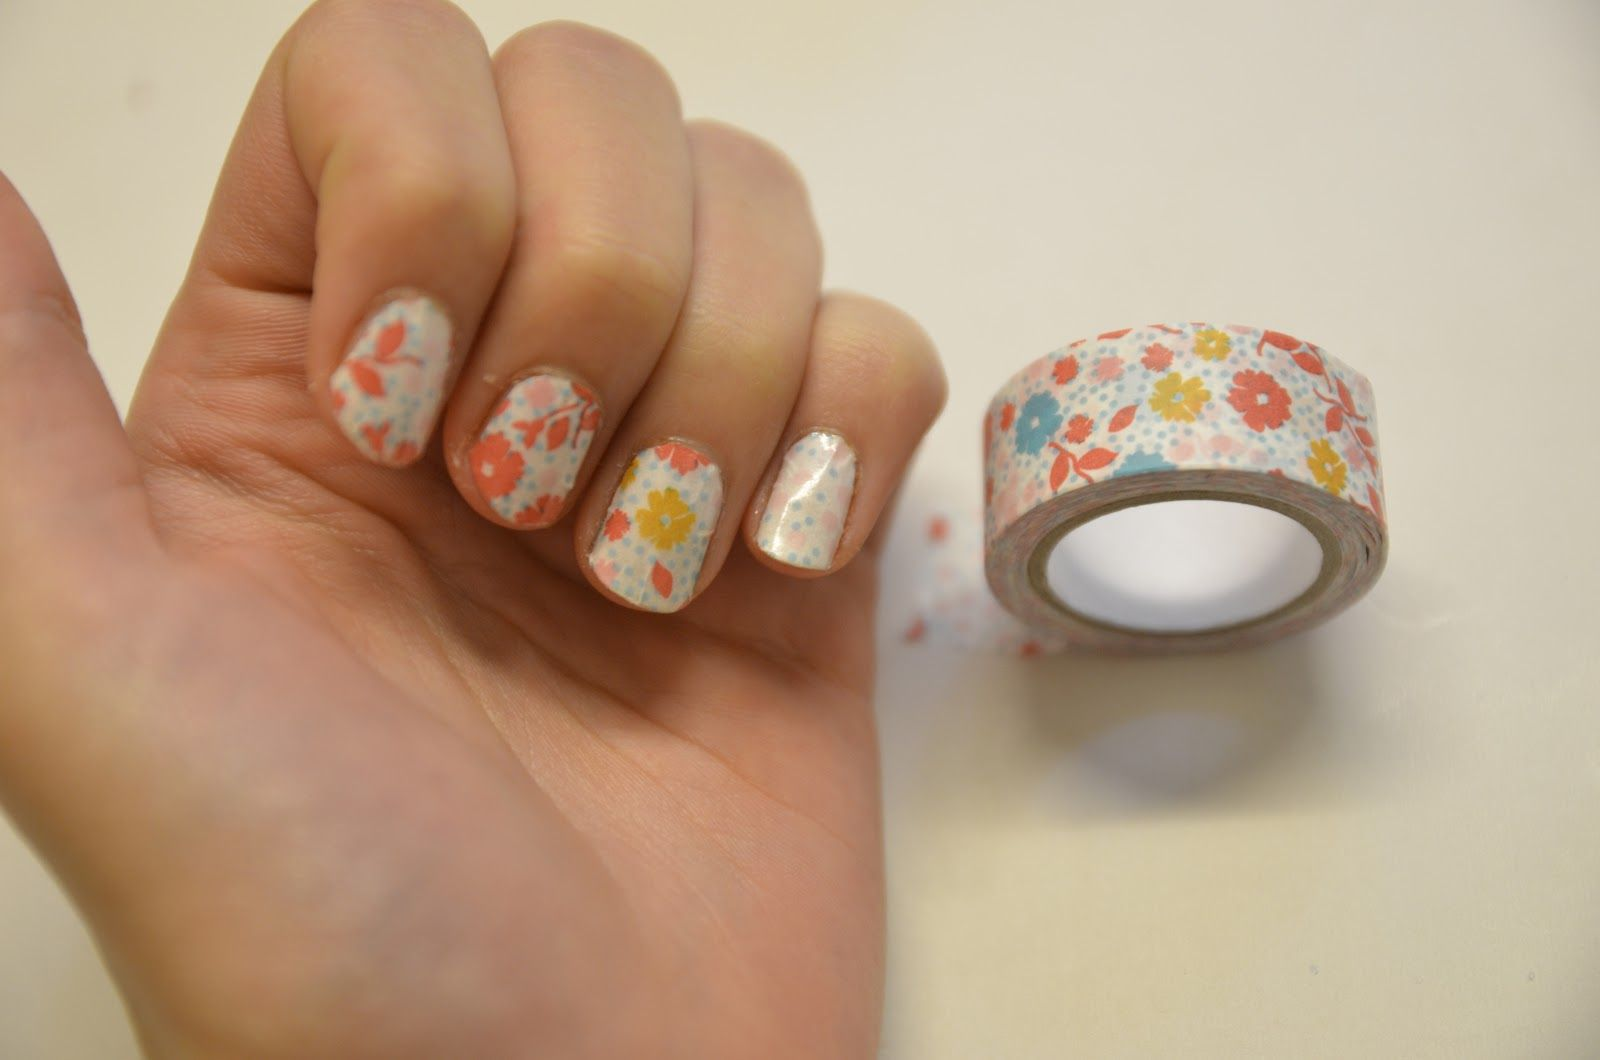 mangelmoes: DIY | washi tape nails | Beauty to DIY and Try ...